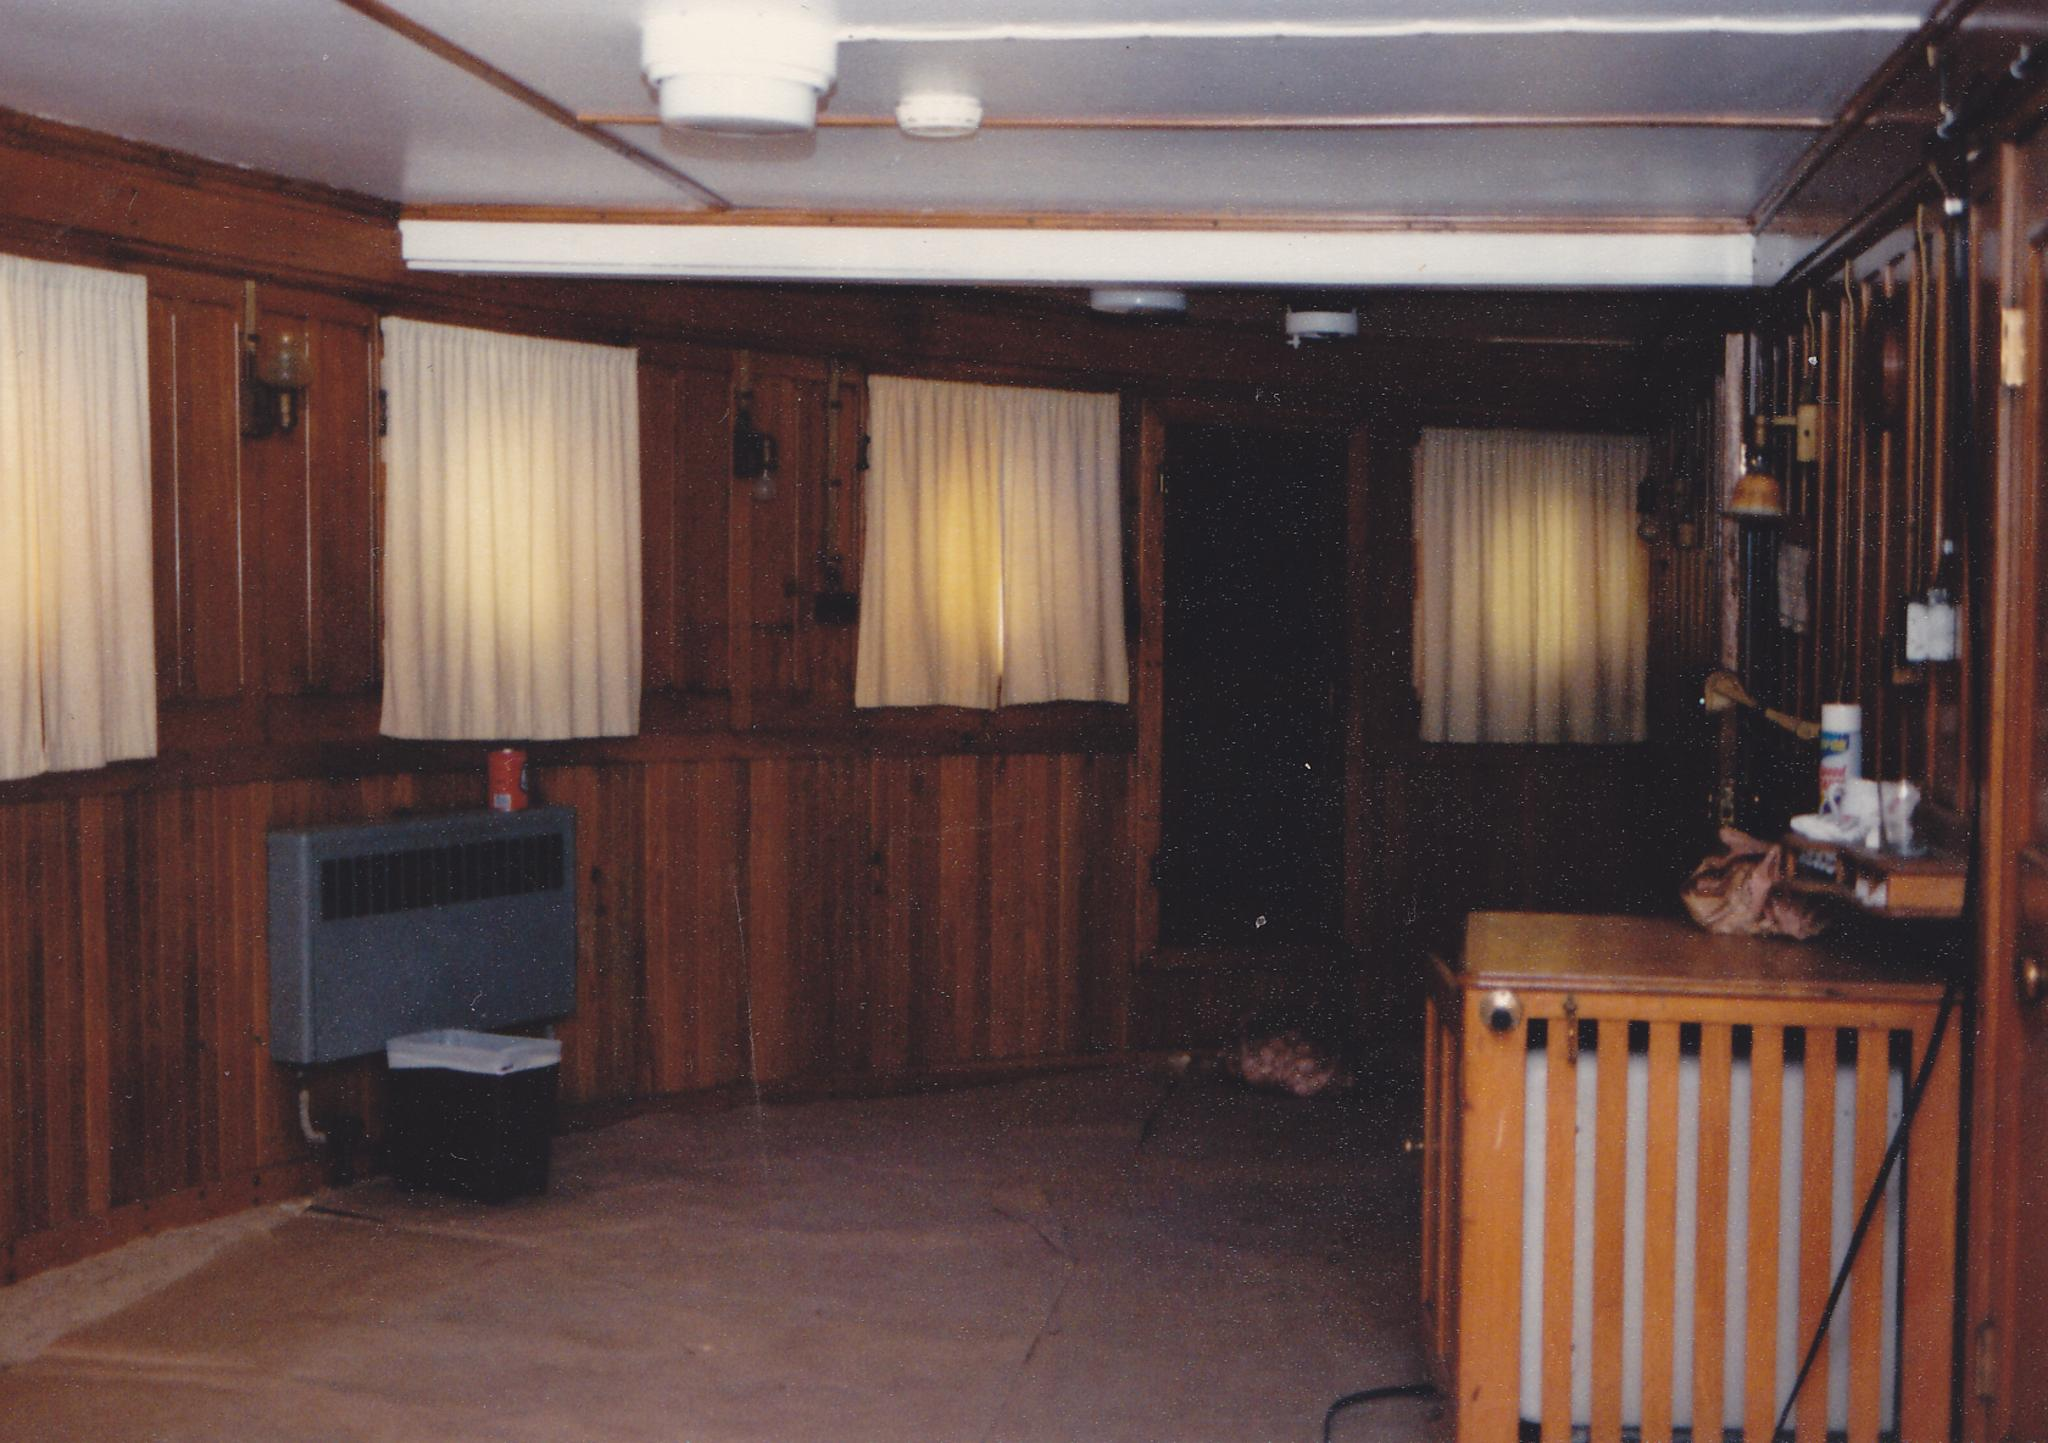 ANOTHER VIEW OF THE LOUNGE by M. Wryter